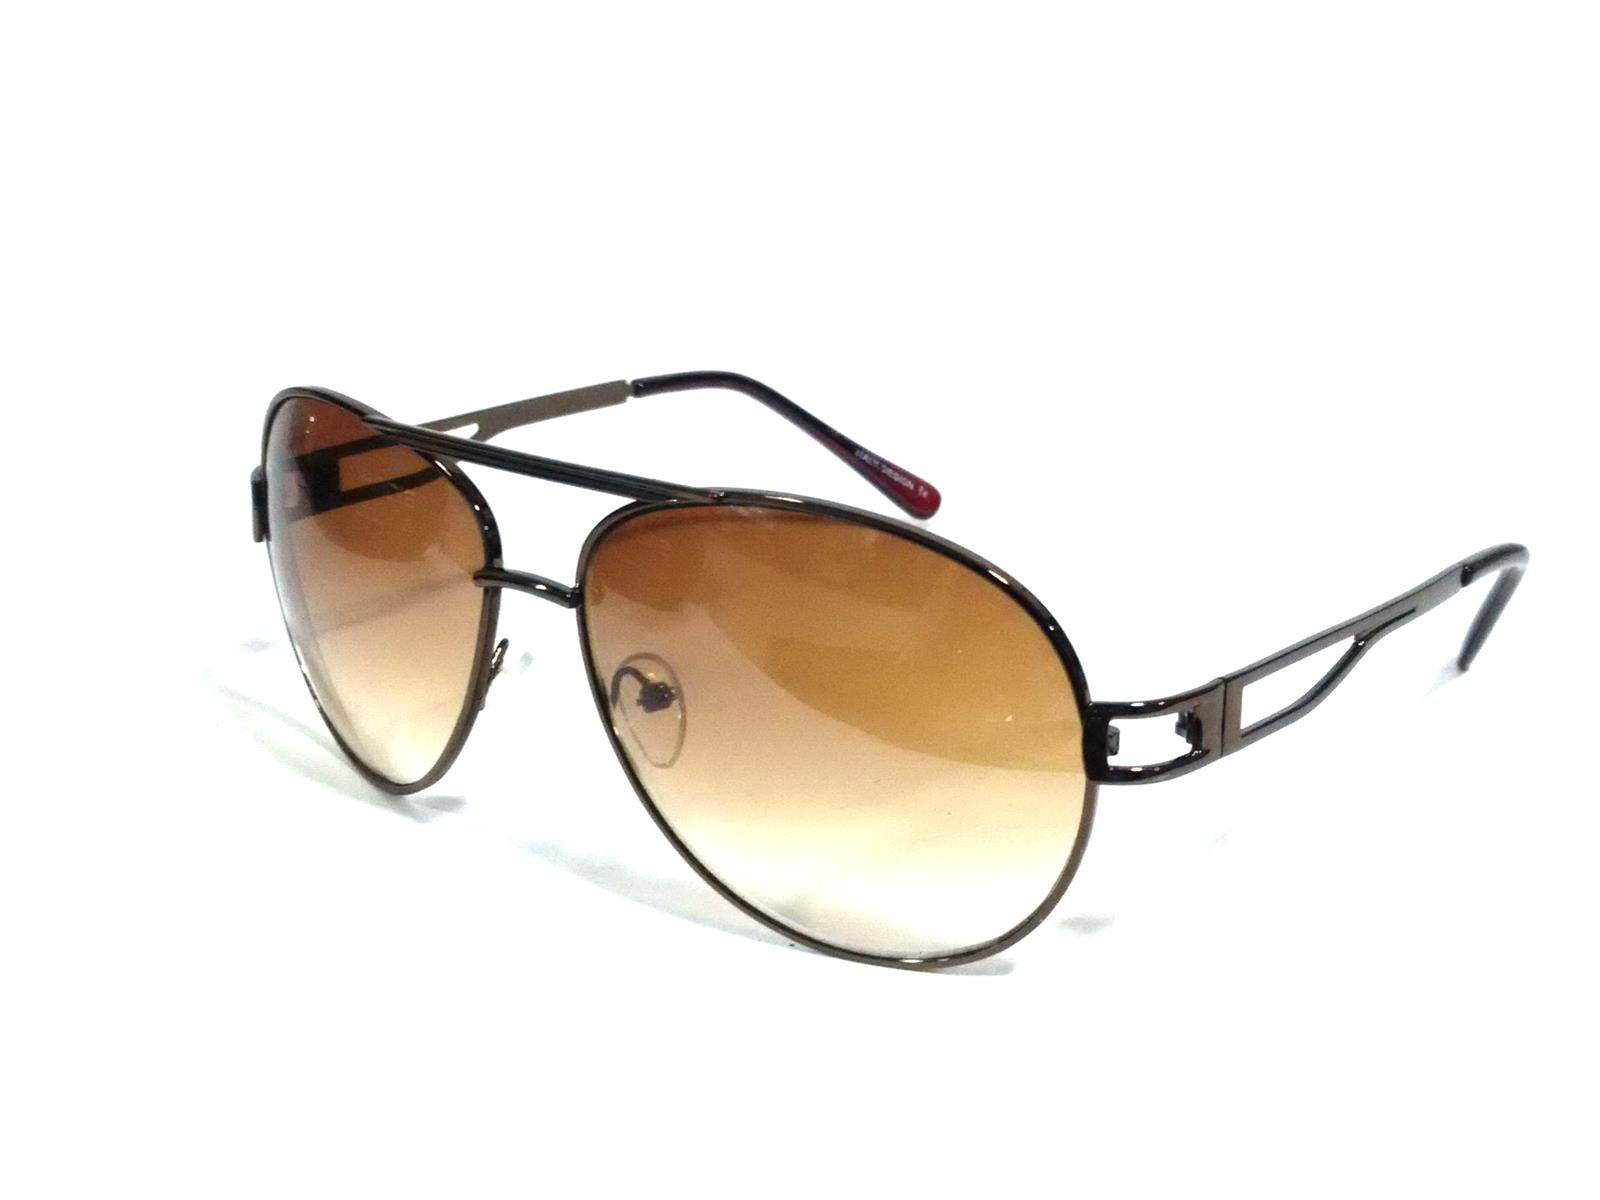 Sigma Brown Aviator Sunglasses for Men and Women Model W2024br